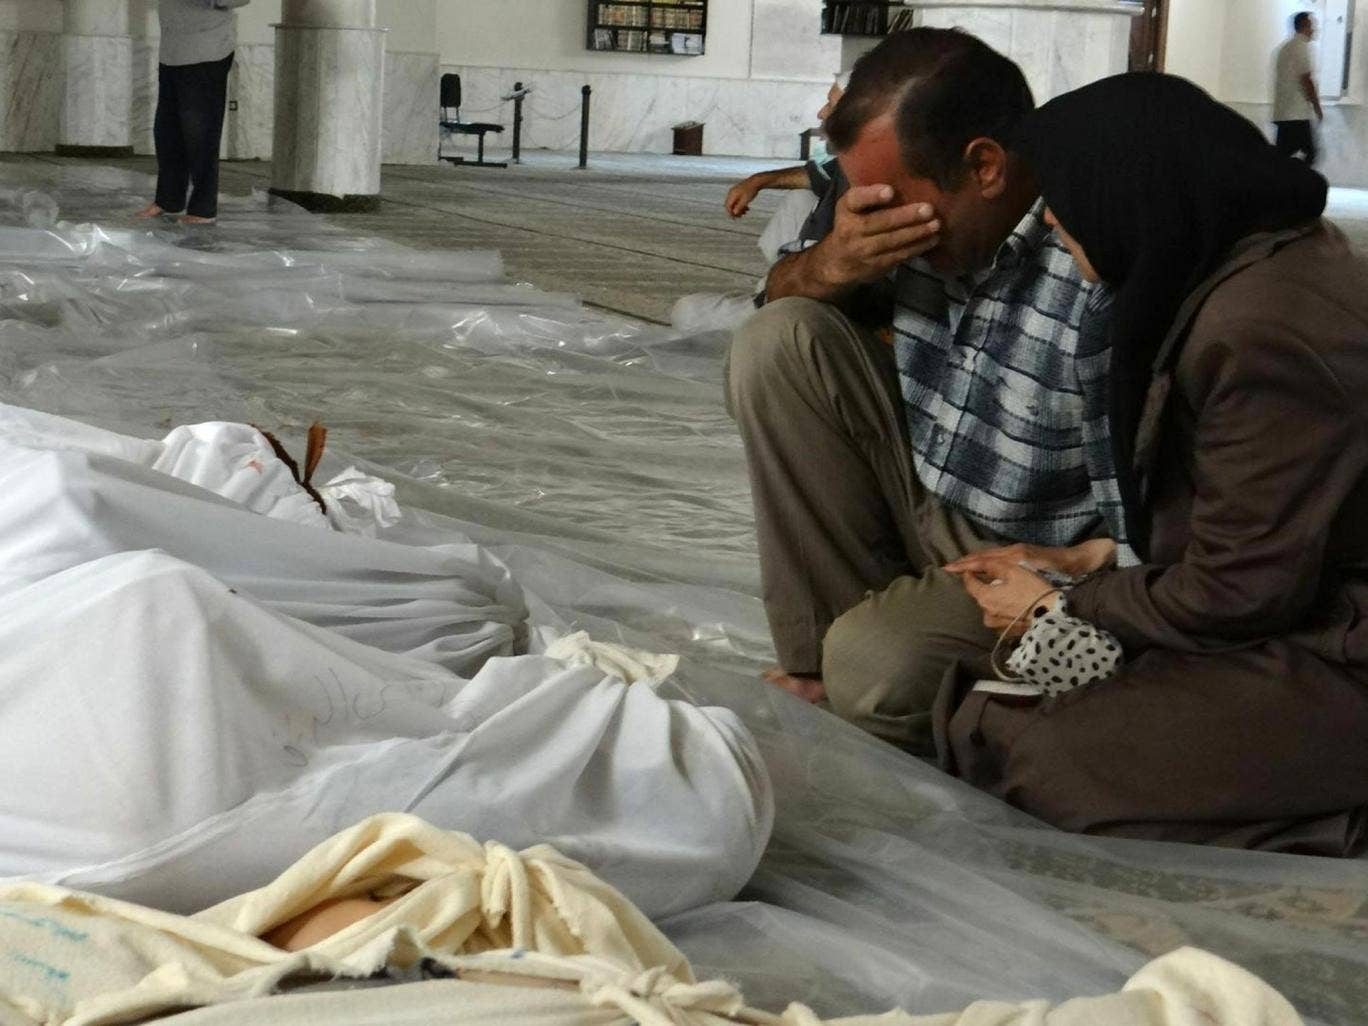 A Syrian couple mourning in front of bodies wrapped in shrouds ahead of funerals following what Syrian rebels claim to be a toxic gas attack by pro-government forces in eastern Ghouta, on the outskirts of Damascus